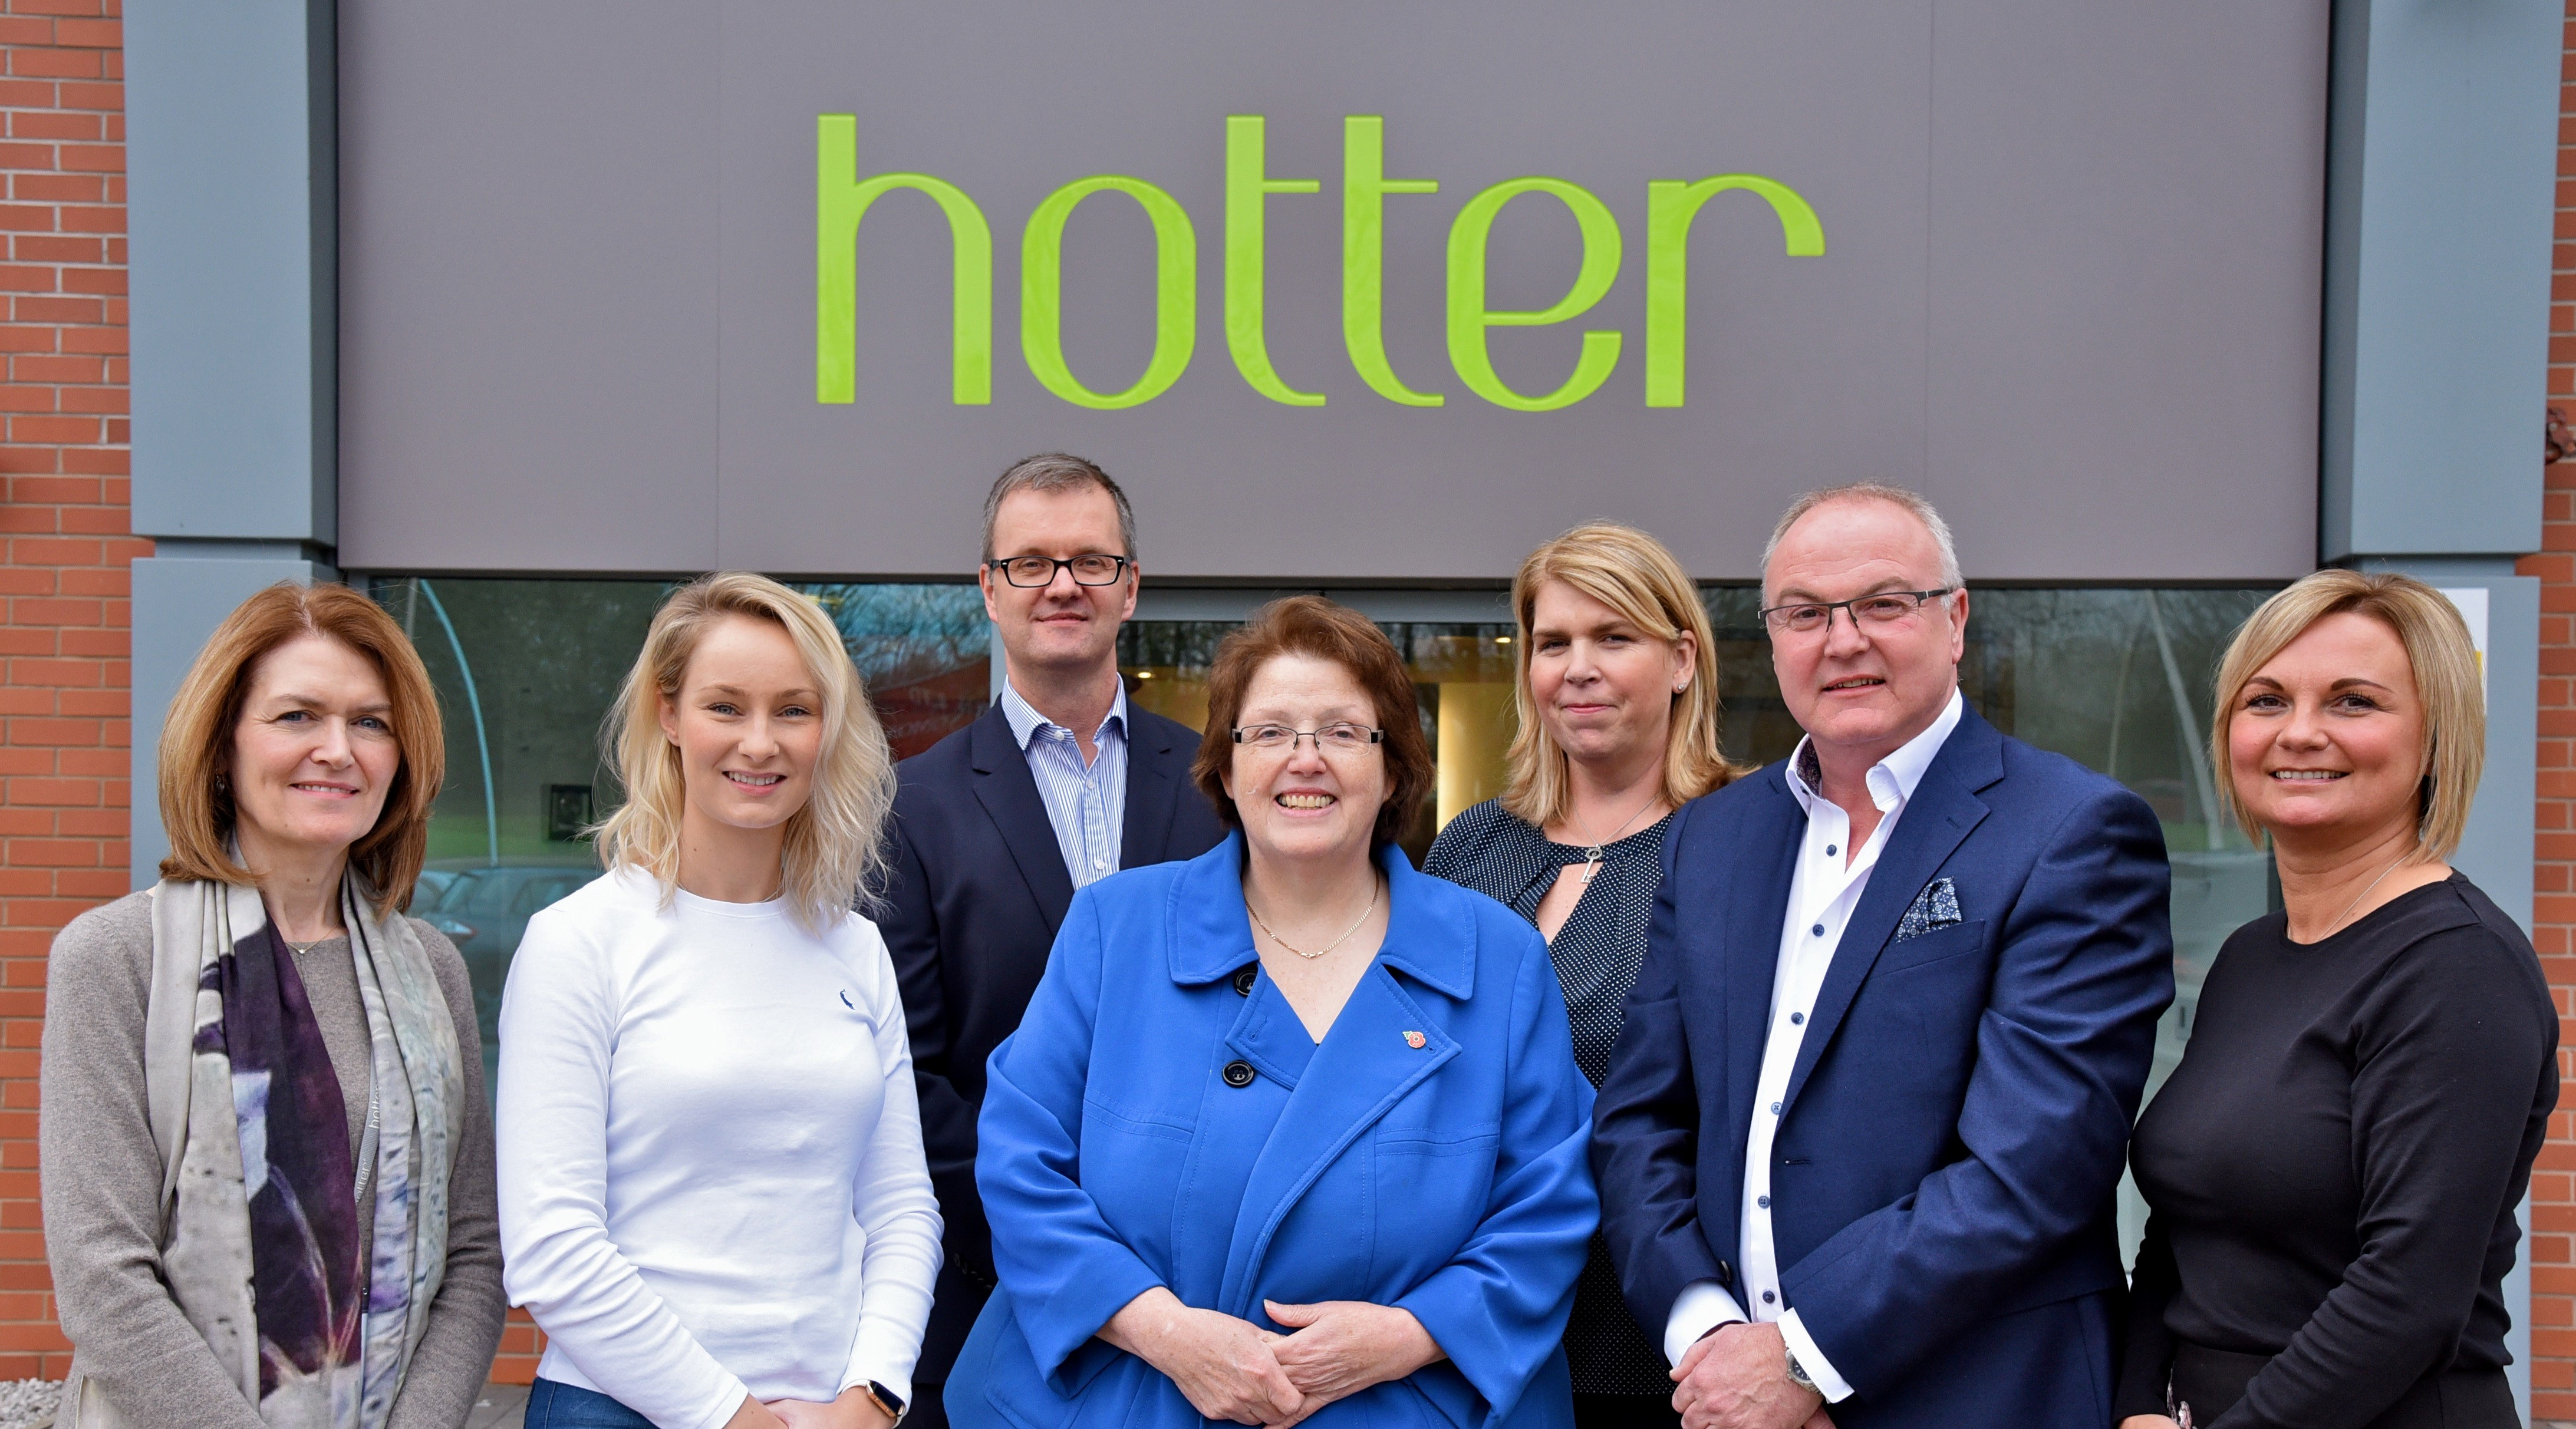 Hotter Shoes shortlisted for Responsible Business Champions scheme